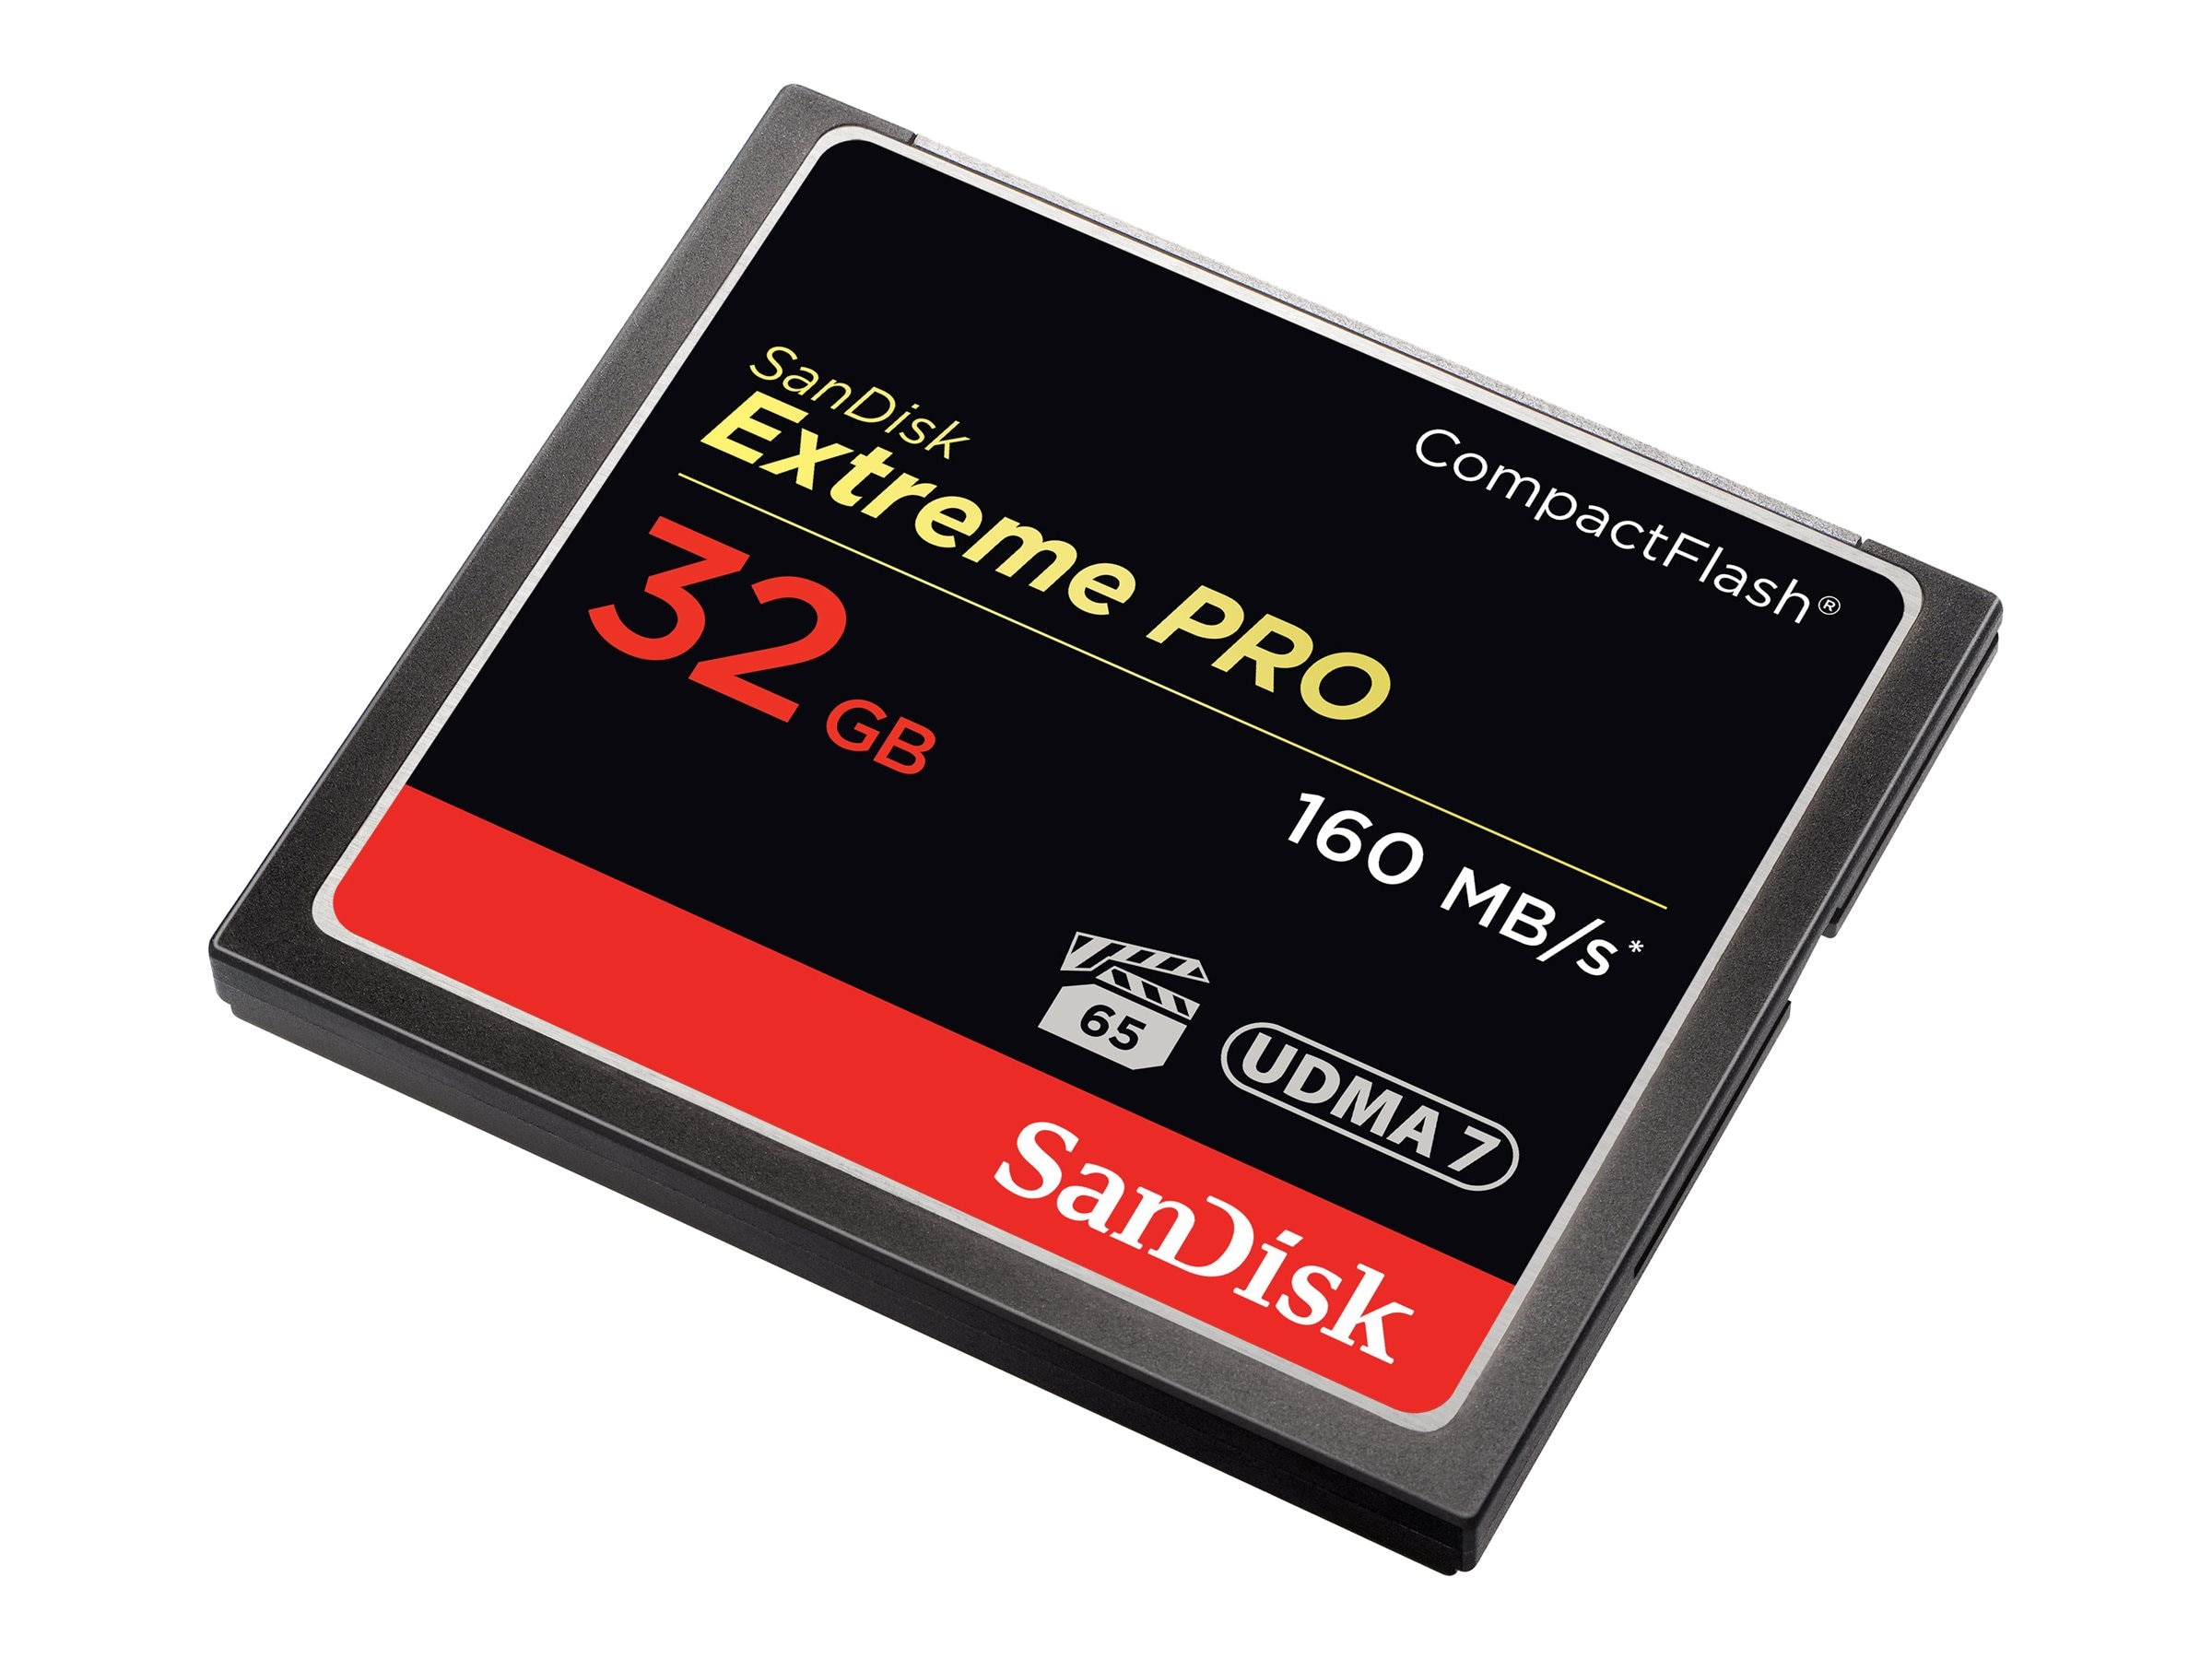 SanDisk 32GB CompactFlash Extreme Pro Memory Card